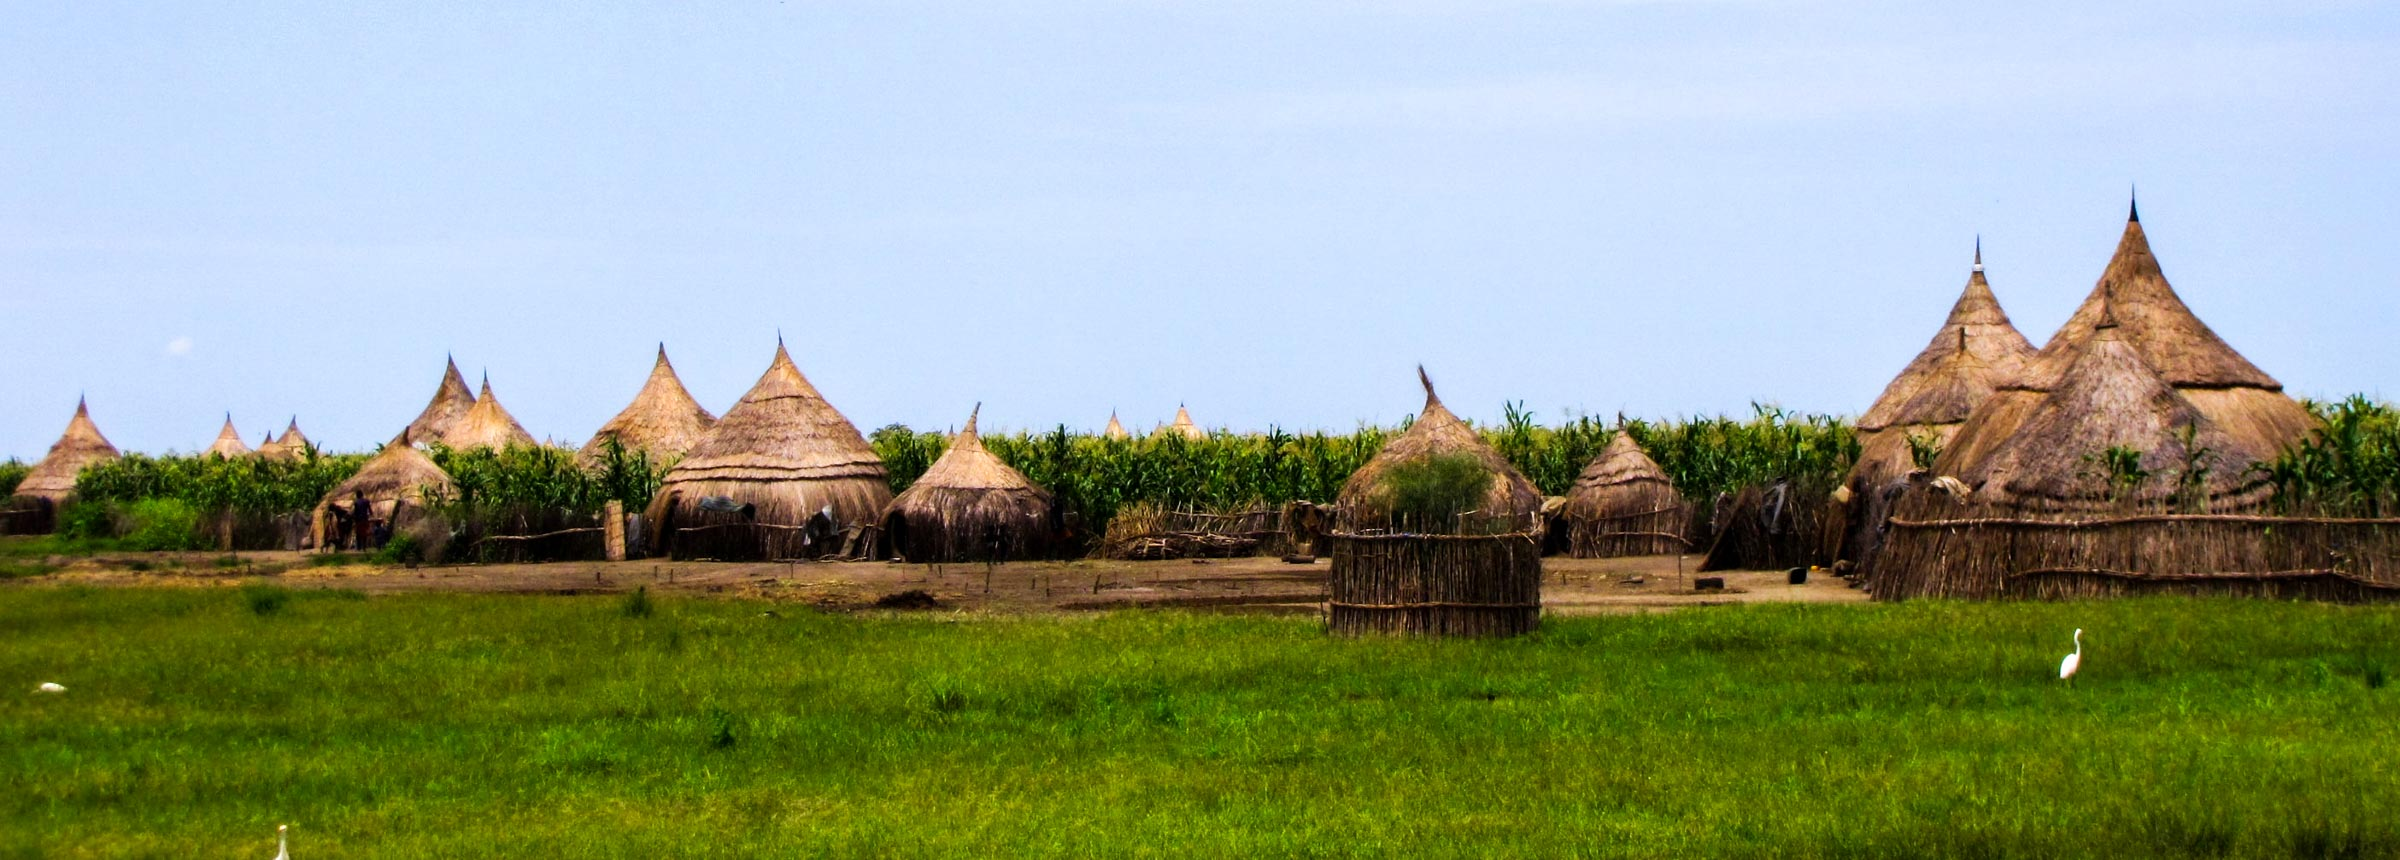 South Sudan huts